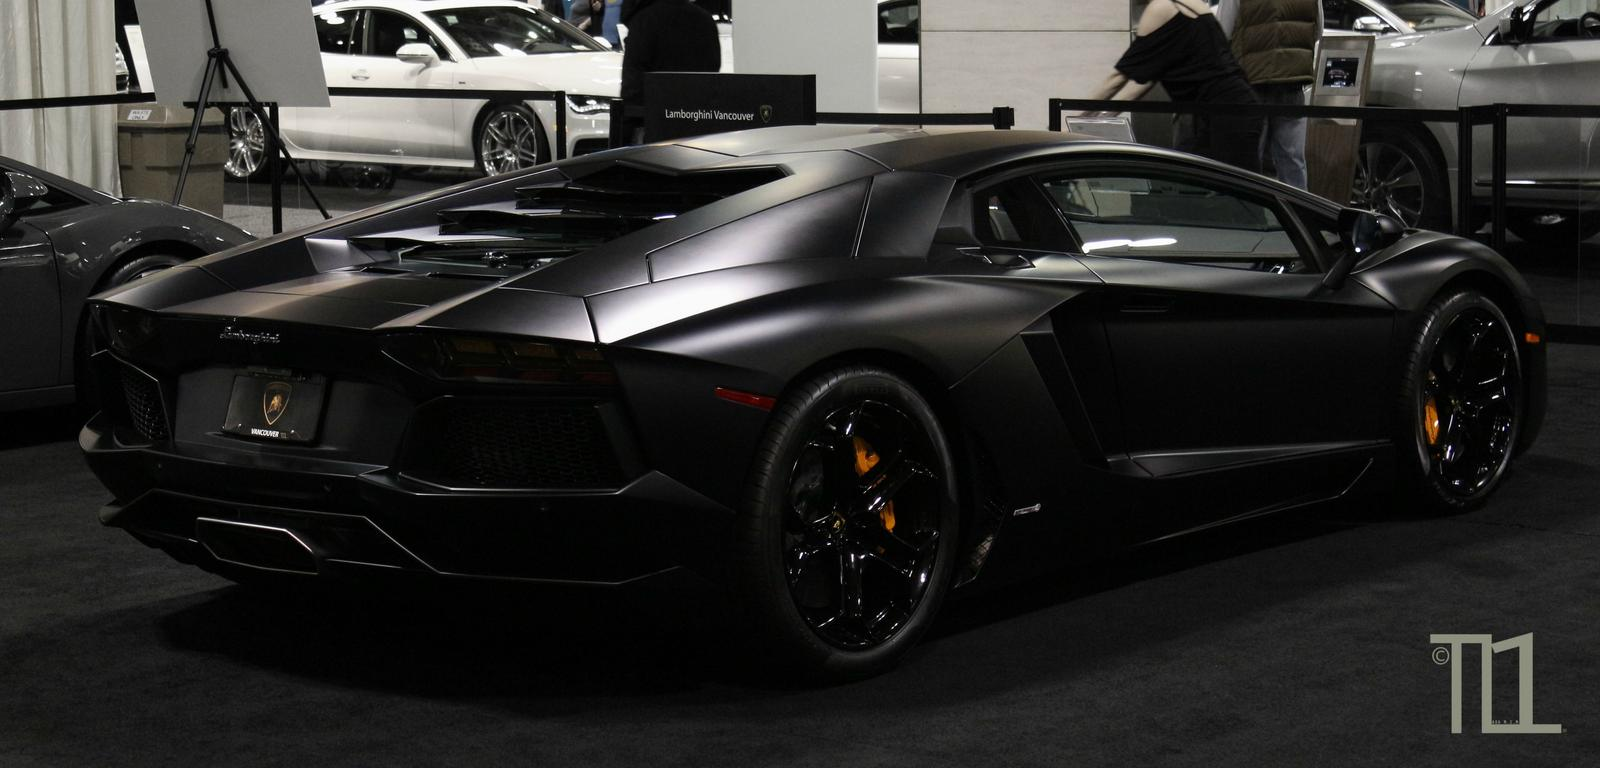 Rear Aventador Lambo Designed for Speed